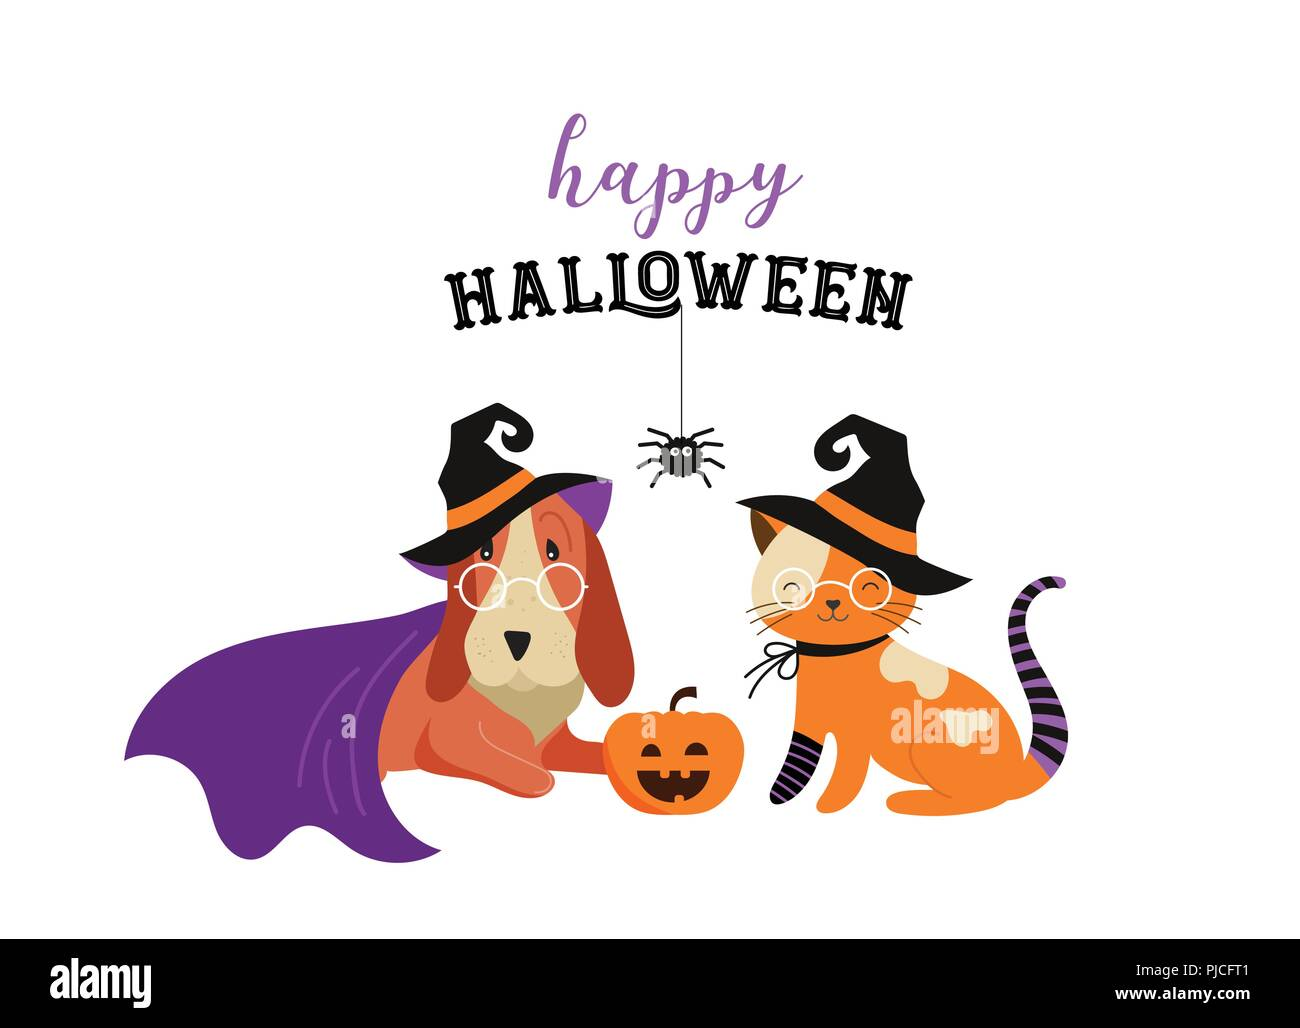 Happy Halloween Cats And Dogs In Monsters Costumes Halloween Party Vector Illustration Banner Elements Set Stock Vector Image Art Alamy